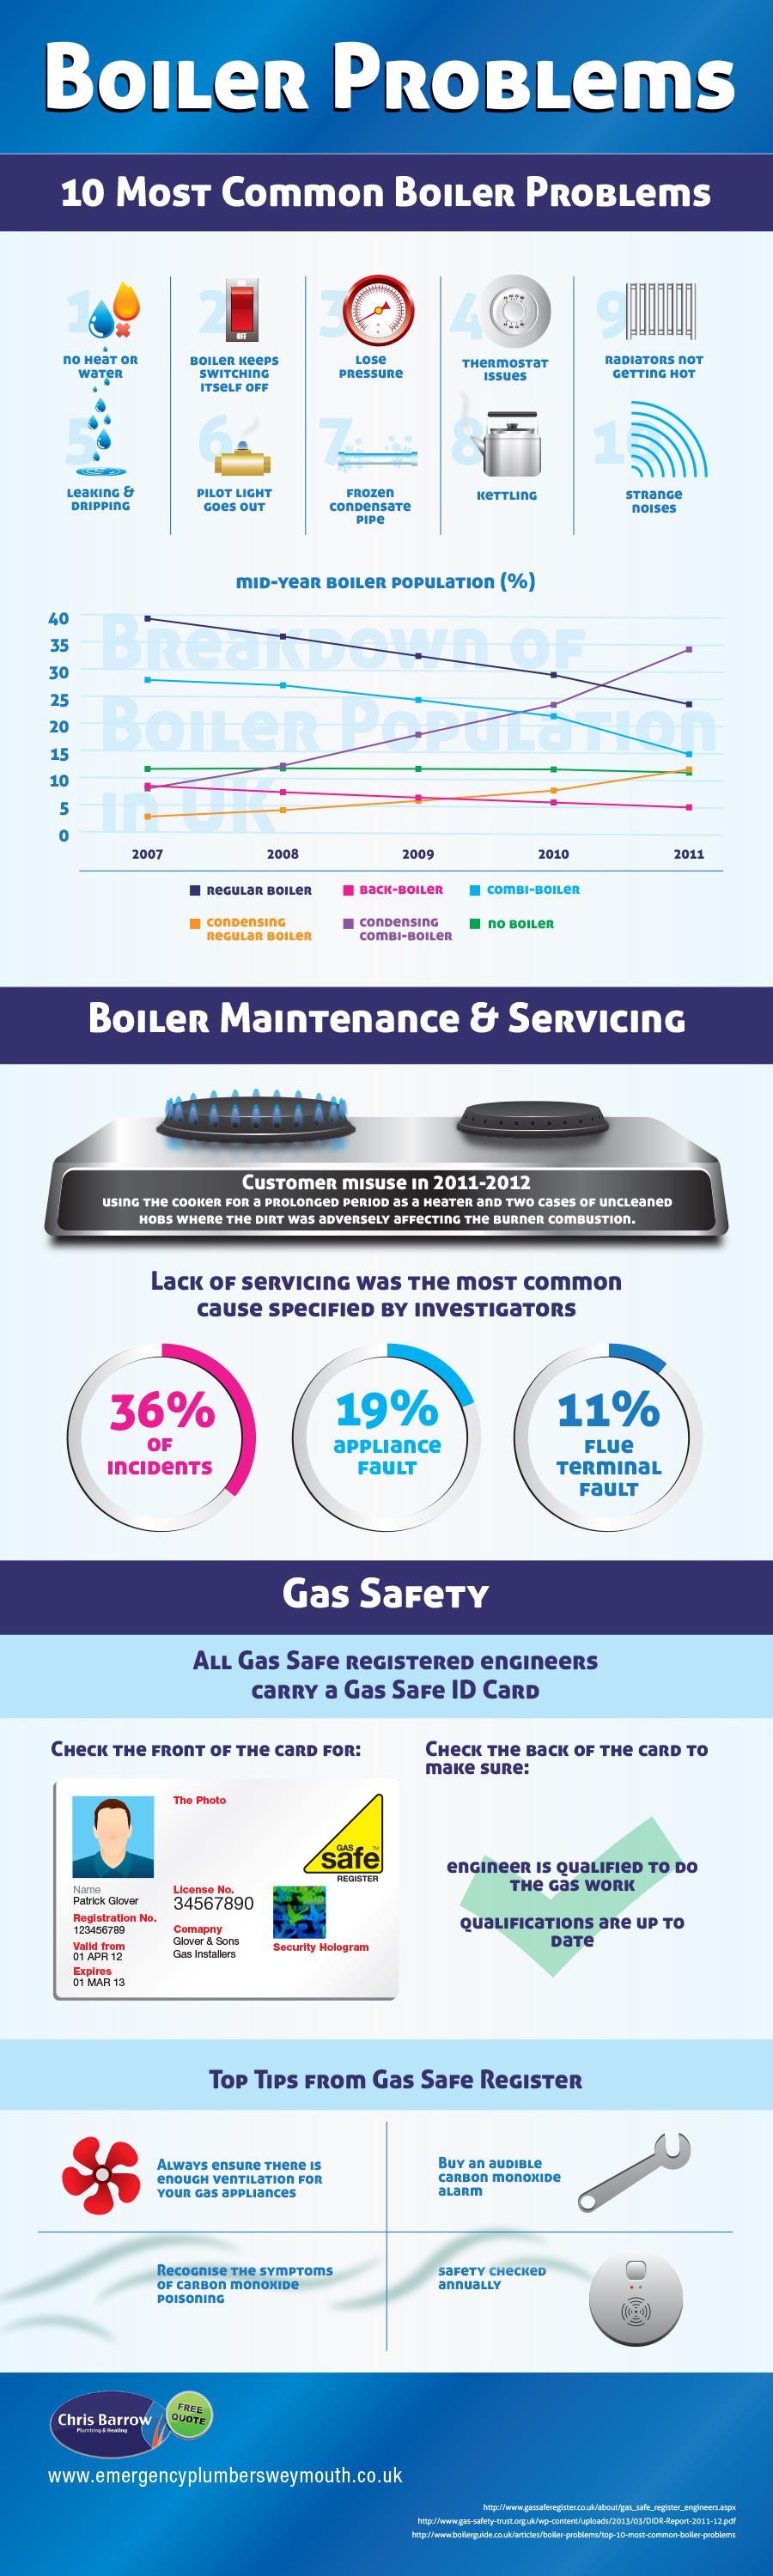 Boiler Problems 10 Most Common Boiler problems